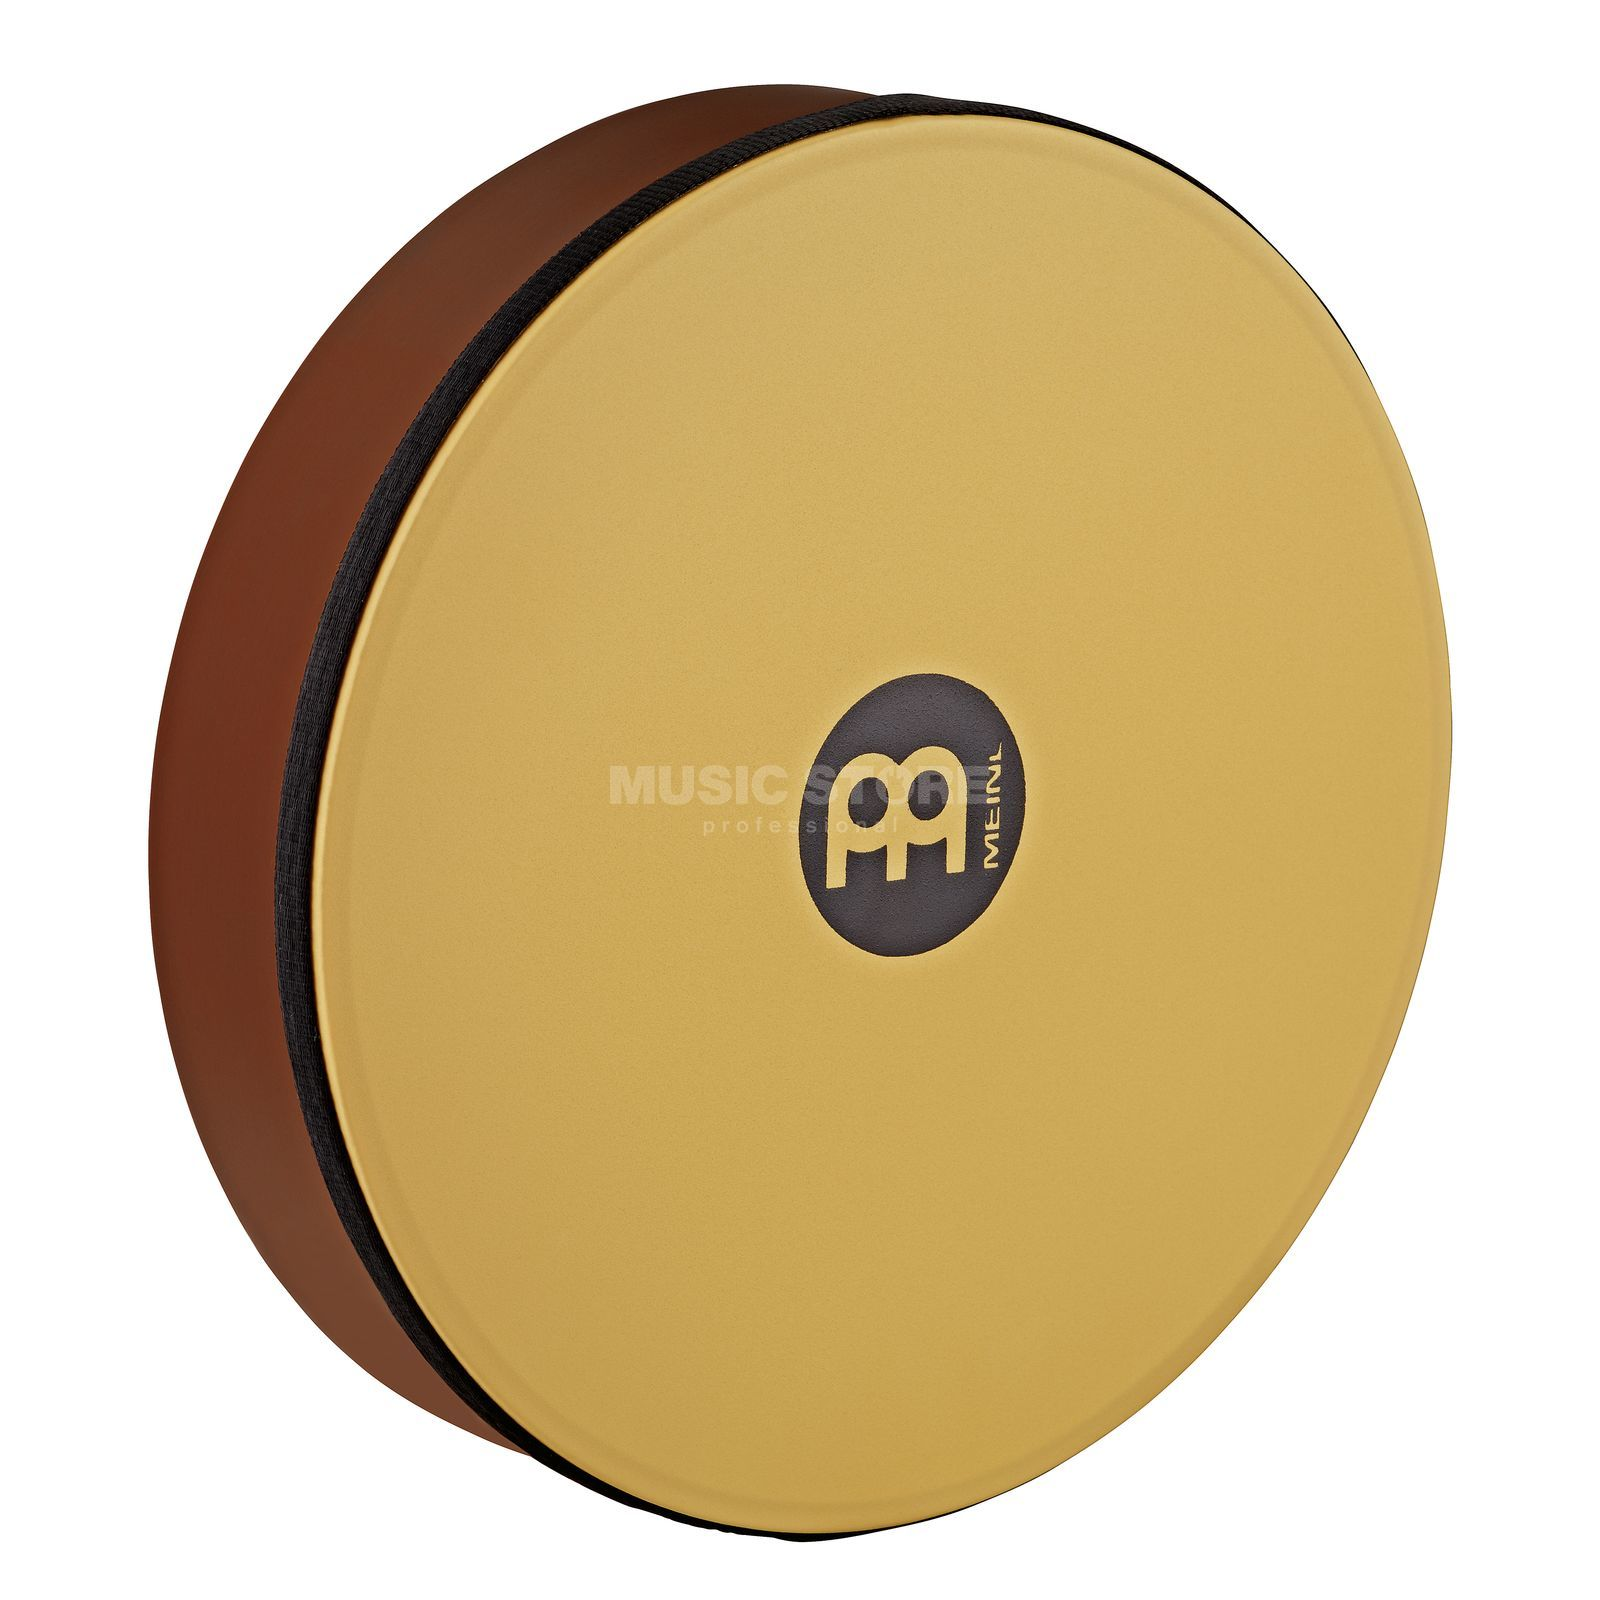 "Meinl Frame Drum HD12AB-TF, 12"", African Brown Image du produit"